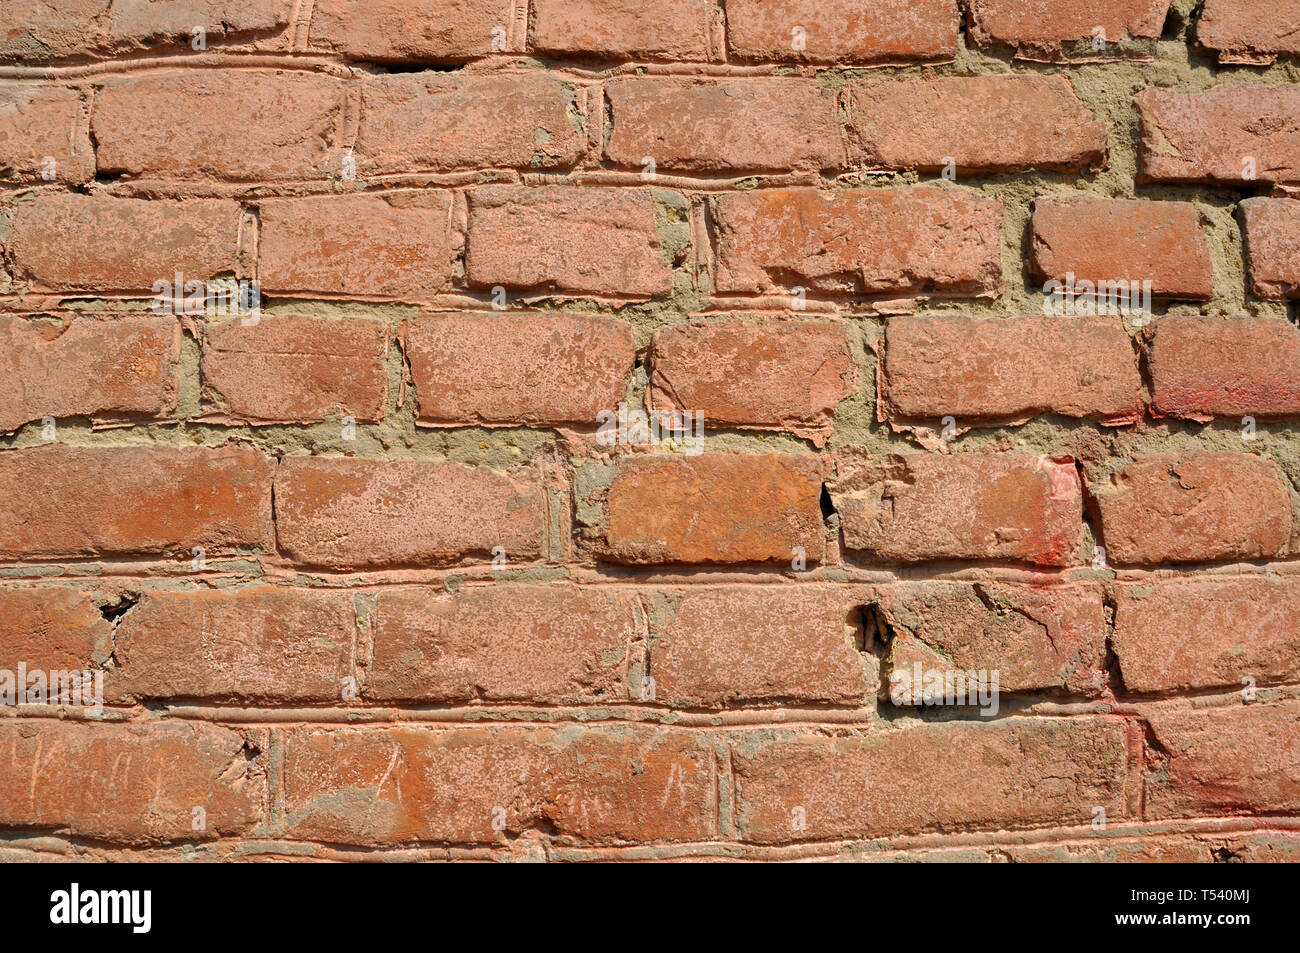 Old flaky red brick wall with cracks and scratches - Stock Image